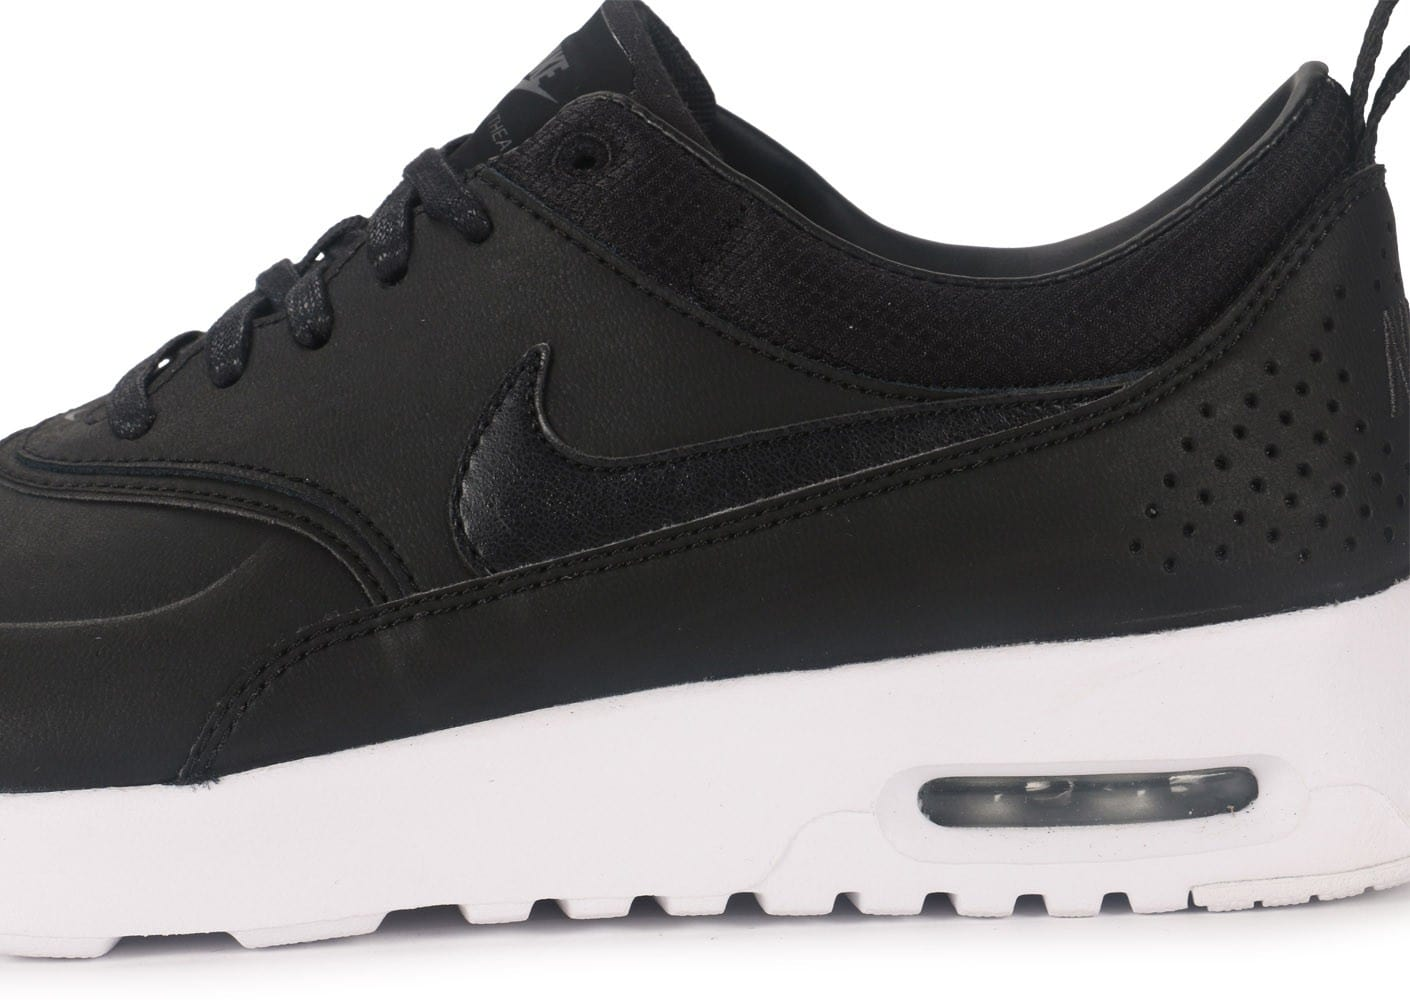 nike air max thea cuir noire chaussures chaussures chausport. Black Bedroom Furniture Sets. Home Design Ideas